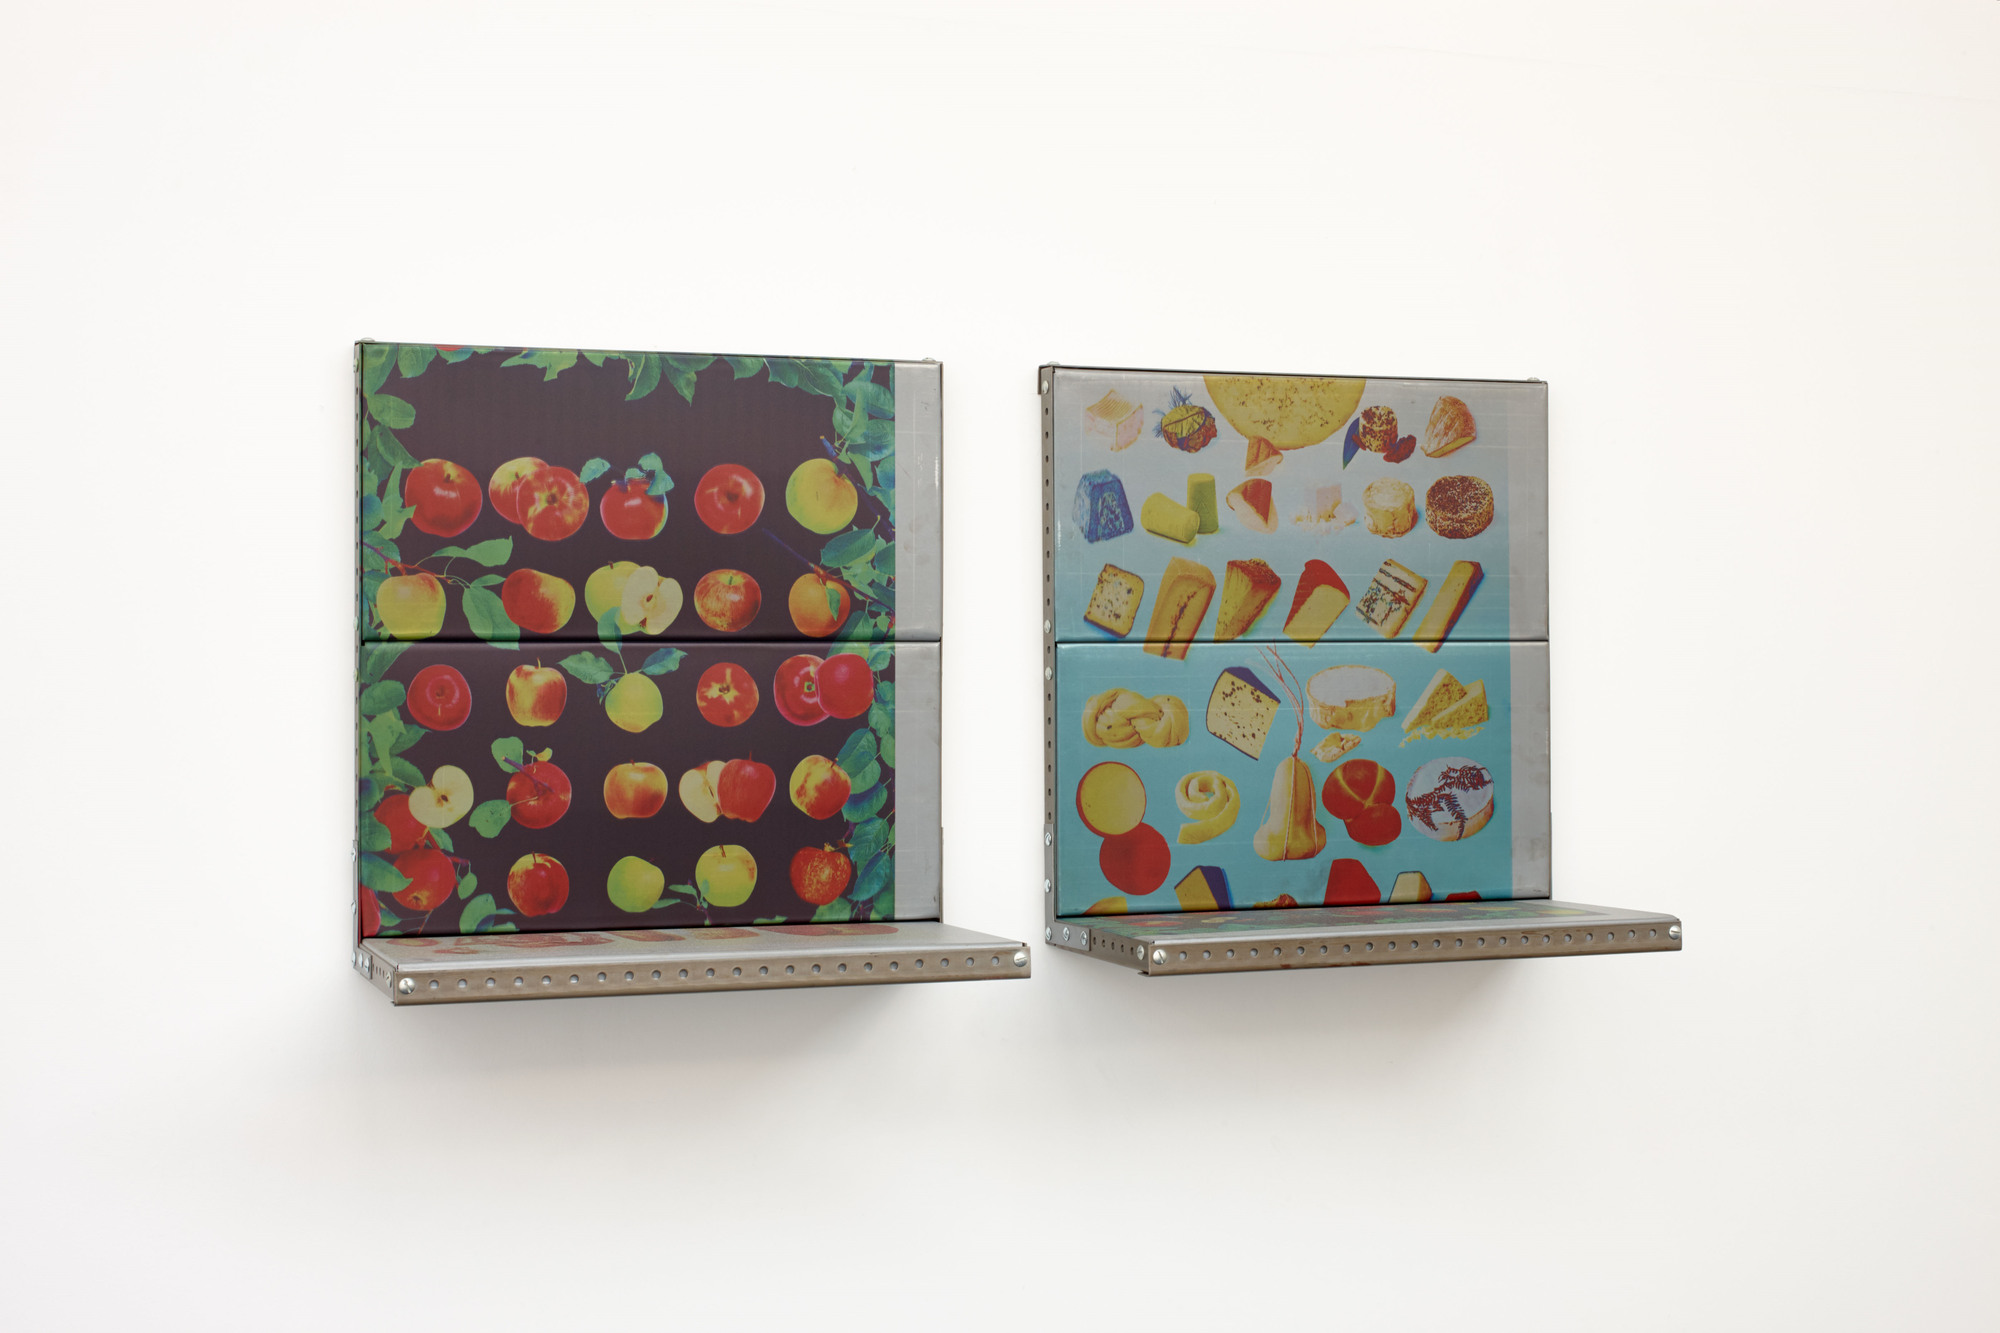 Zak Kitnick - Courses of Action (2_3 Apple, 1_3 Bread), 2013 _ Courses of Action (2_3 Cheese, 1_3 Apple), 2013 (a)